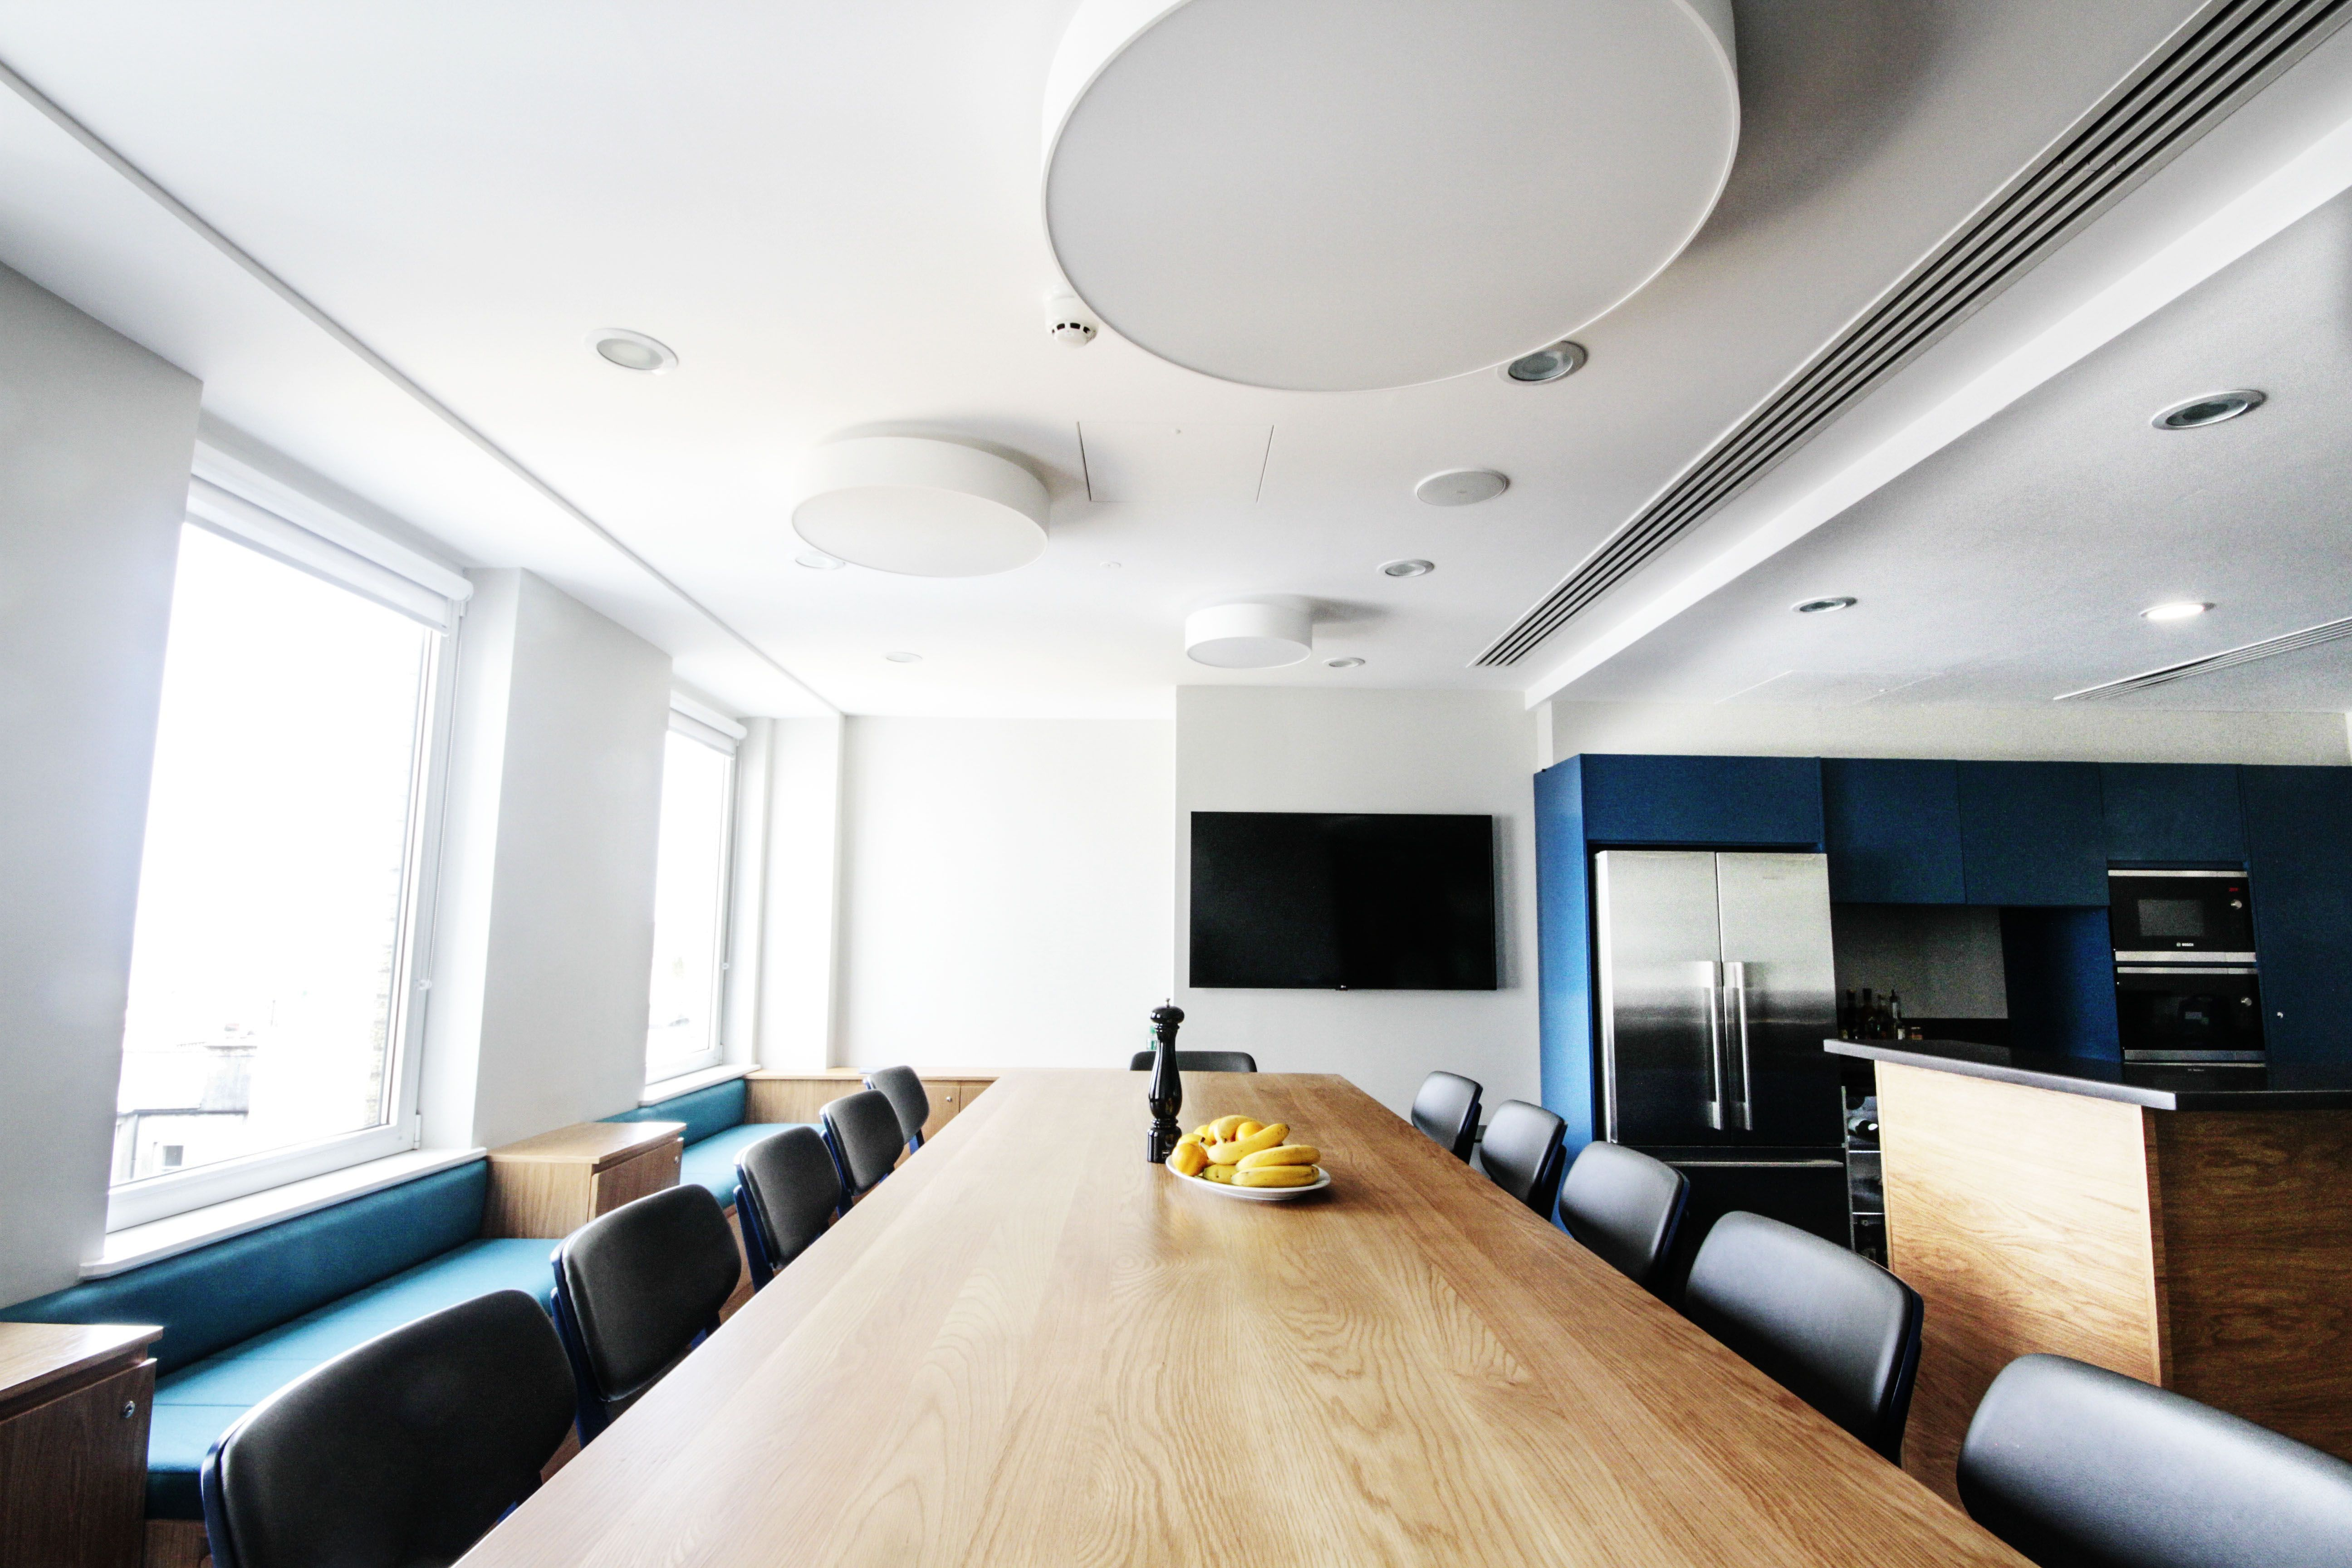 Office Fit Out - Canteen - Prothena Biosciences, Dun Laoghaire, Co. Dublin, by Think Contemporary